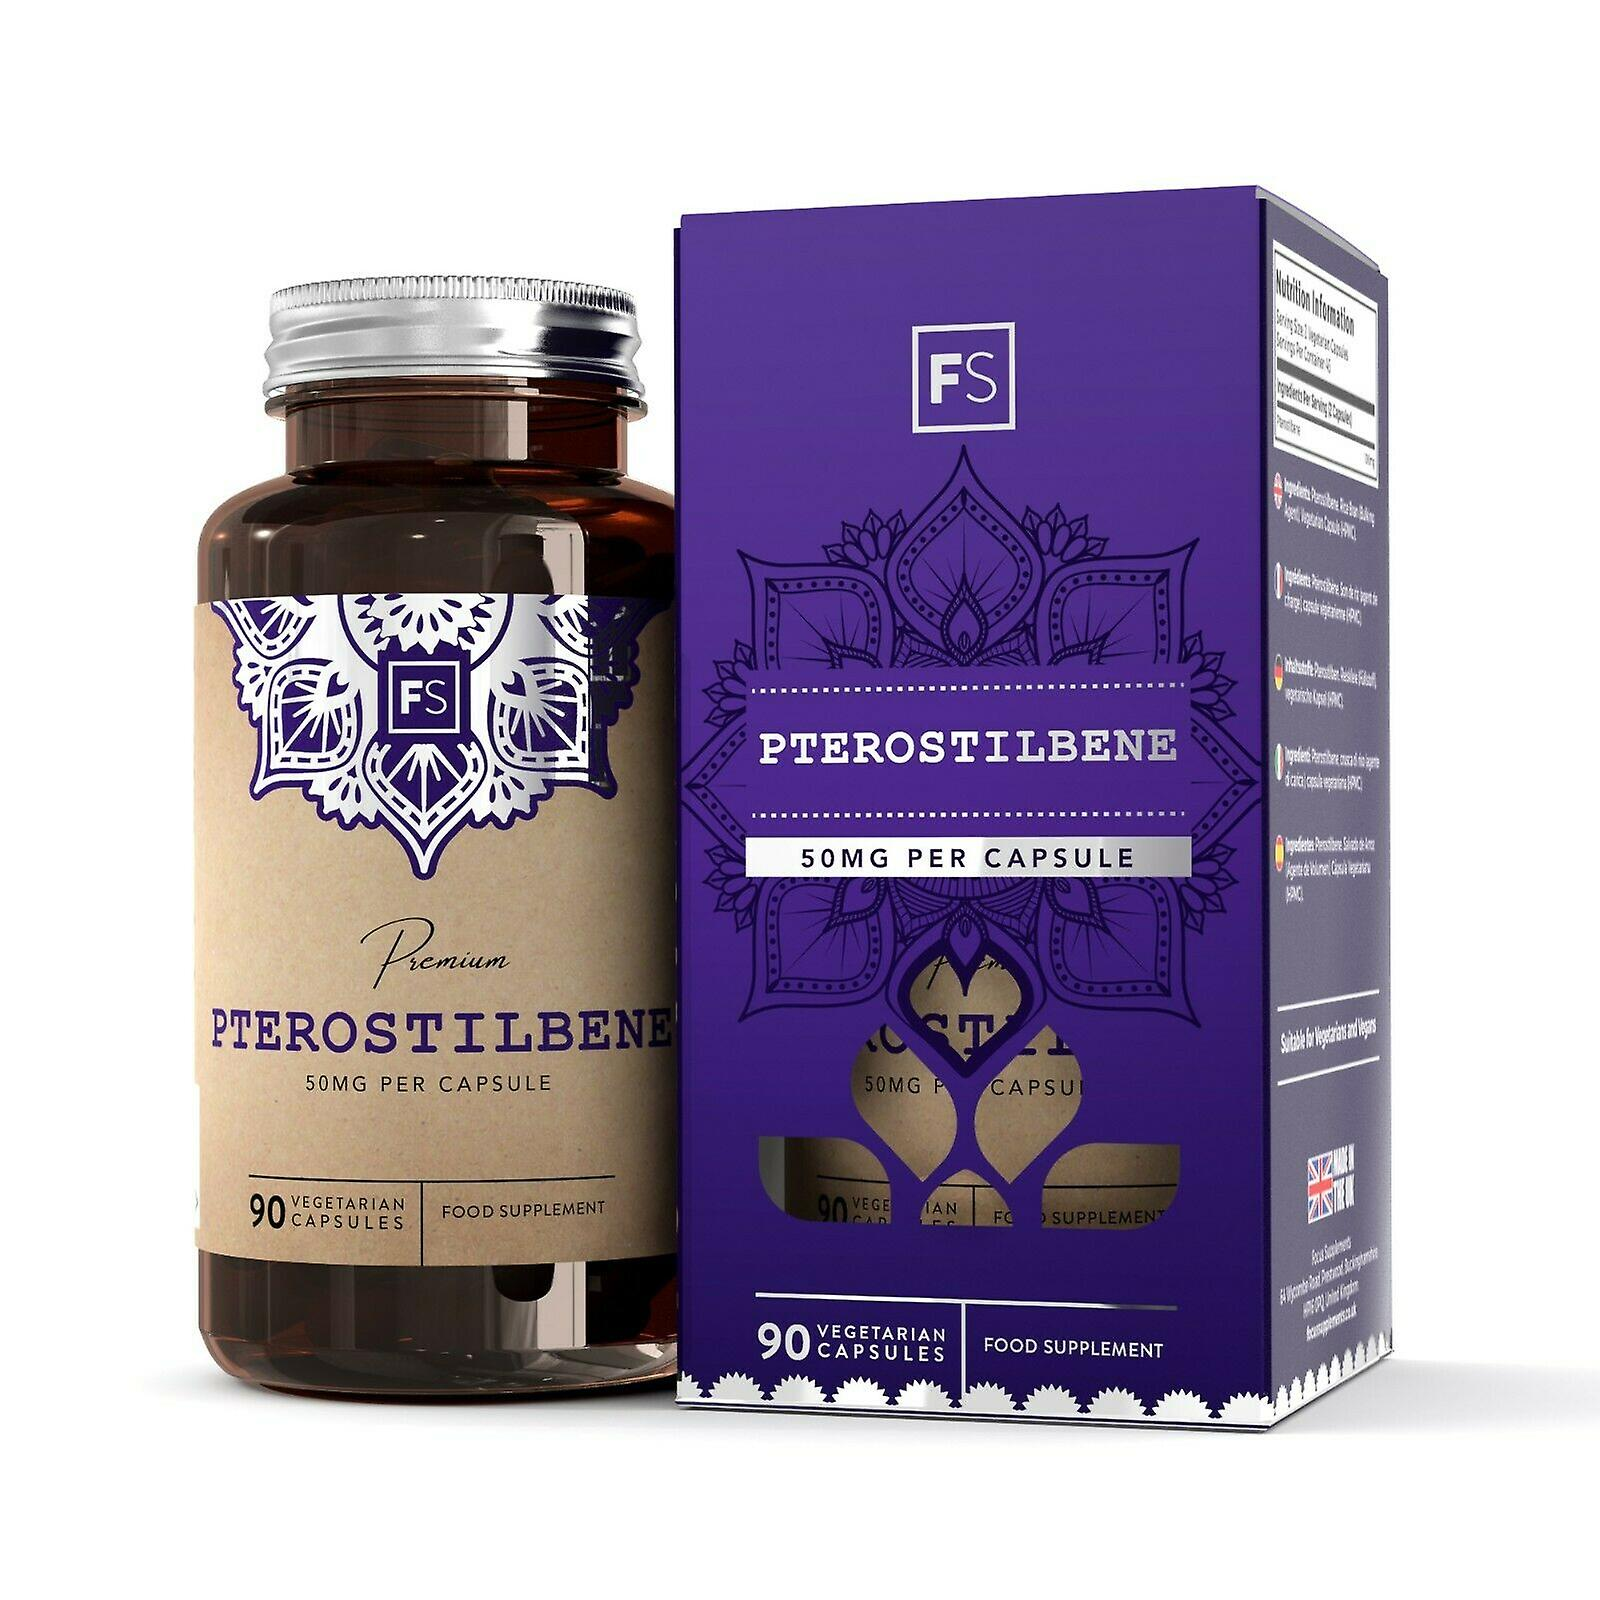 Focus Supplements Pterostilbene (50mg) Capsules